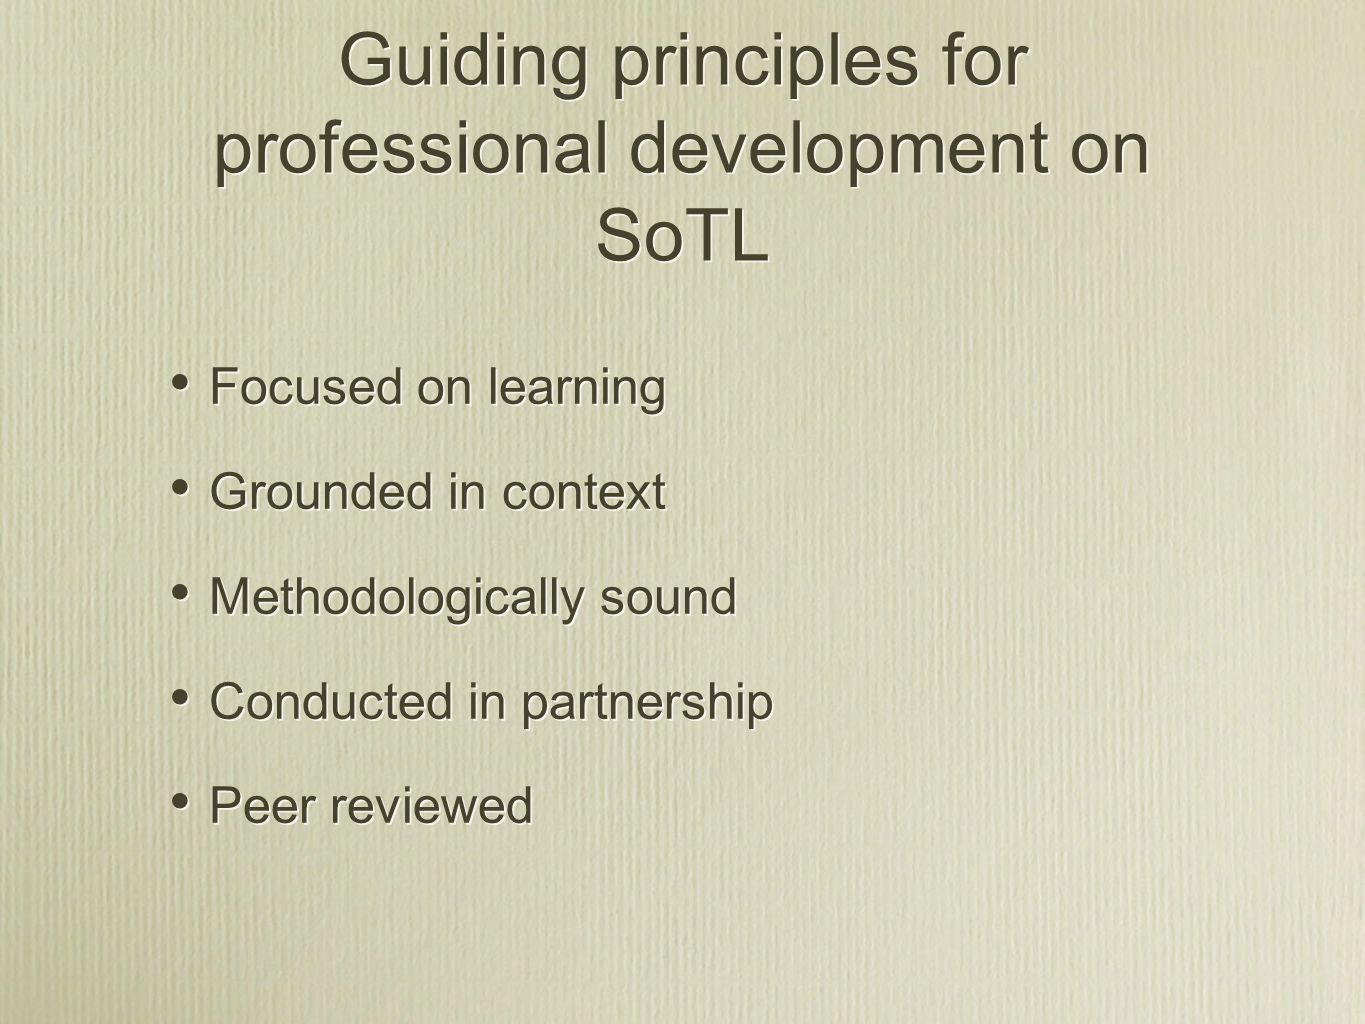 Guiding principles for professional development on SoTL